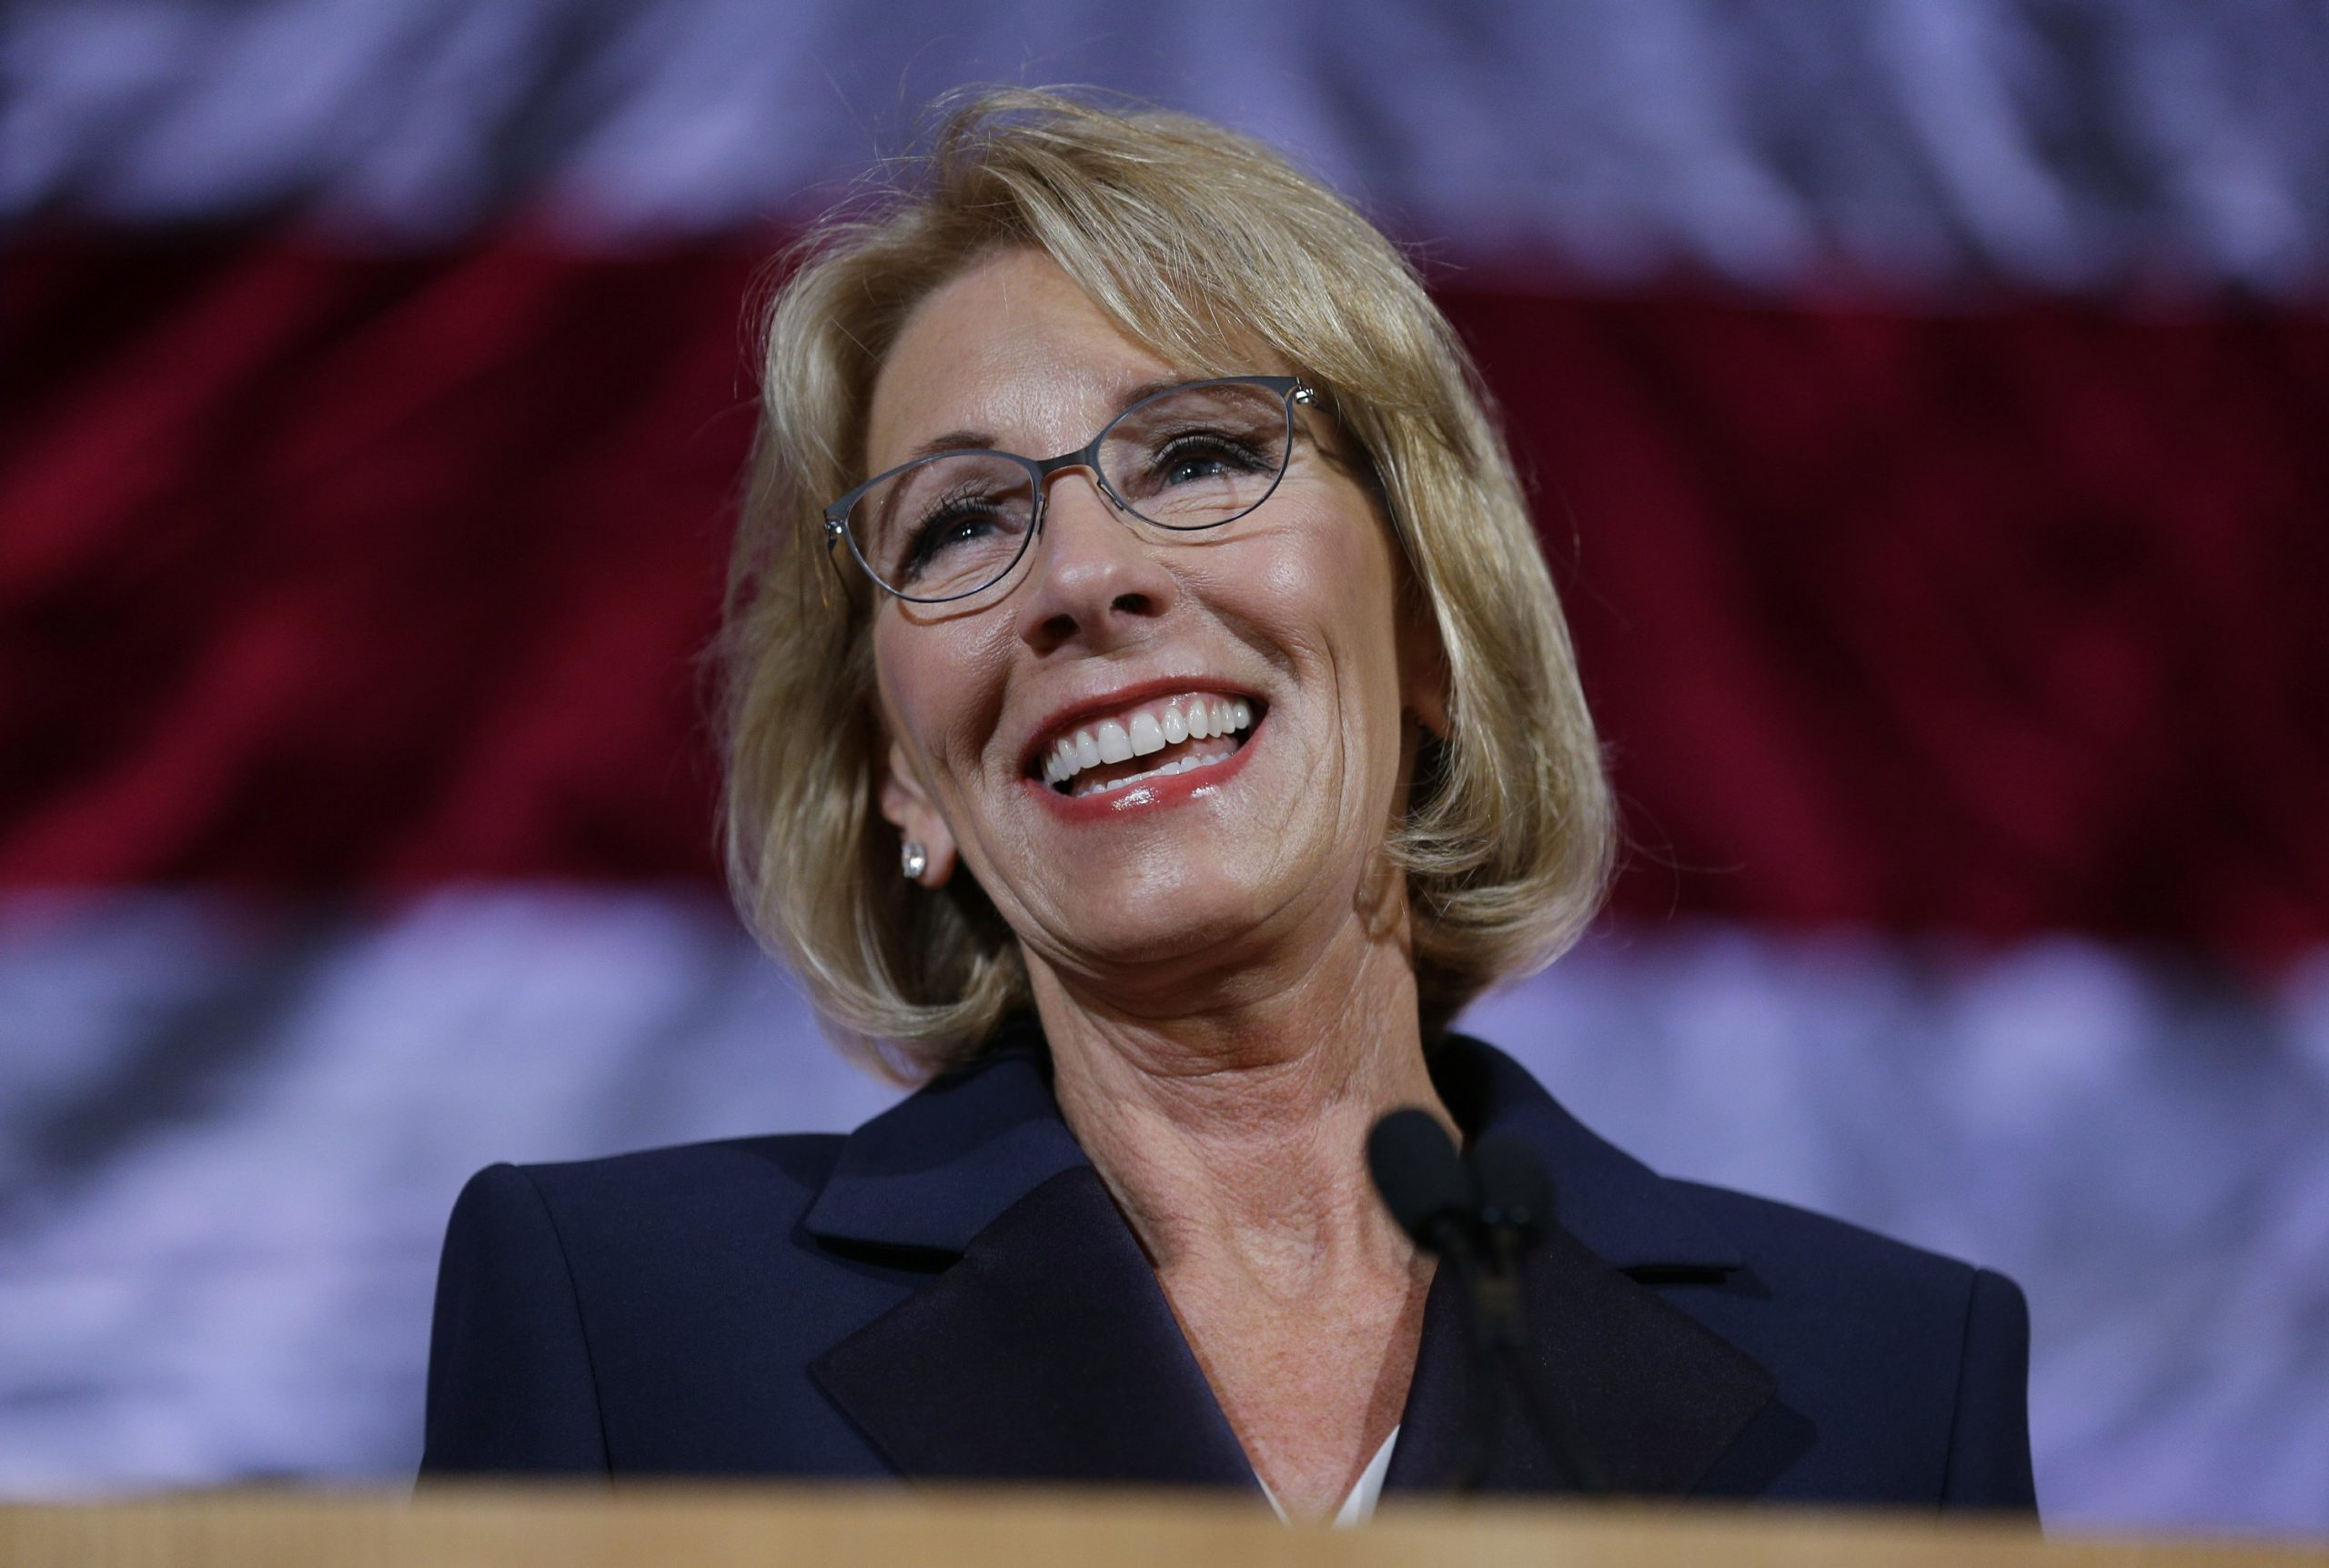 Trump's Education Secretary Betsy DeVos submits resignation